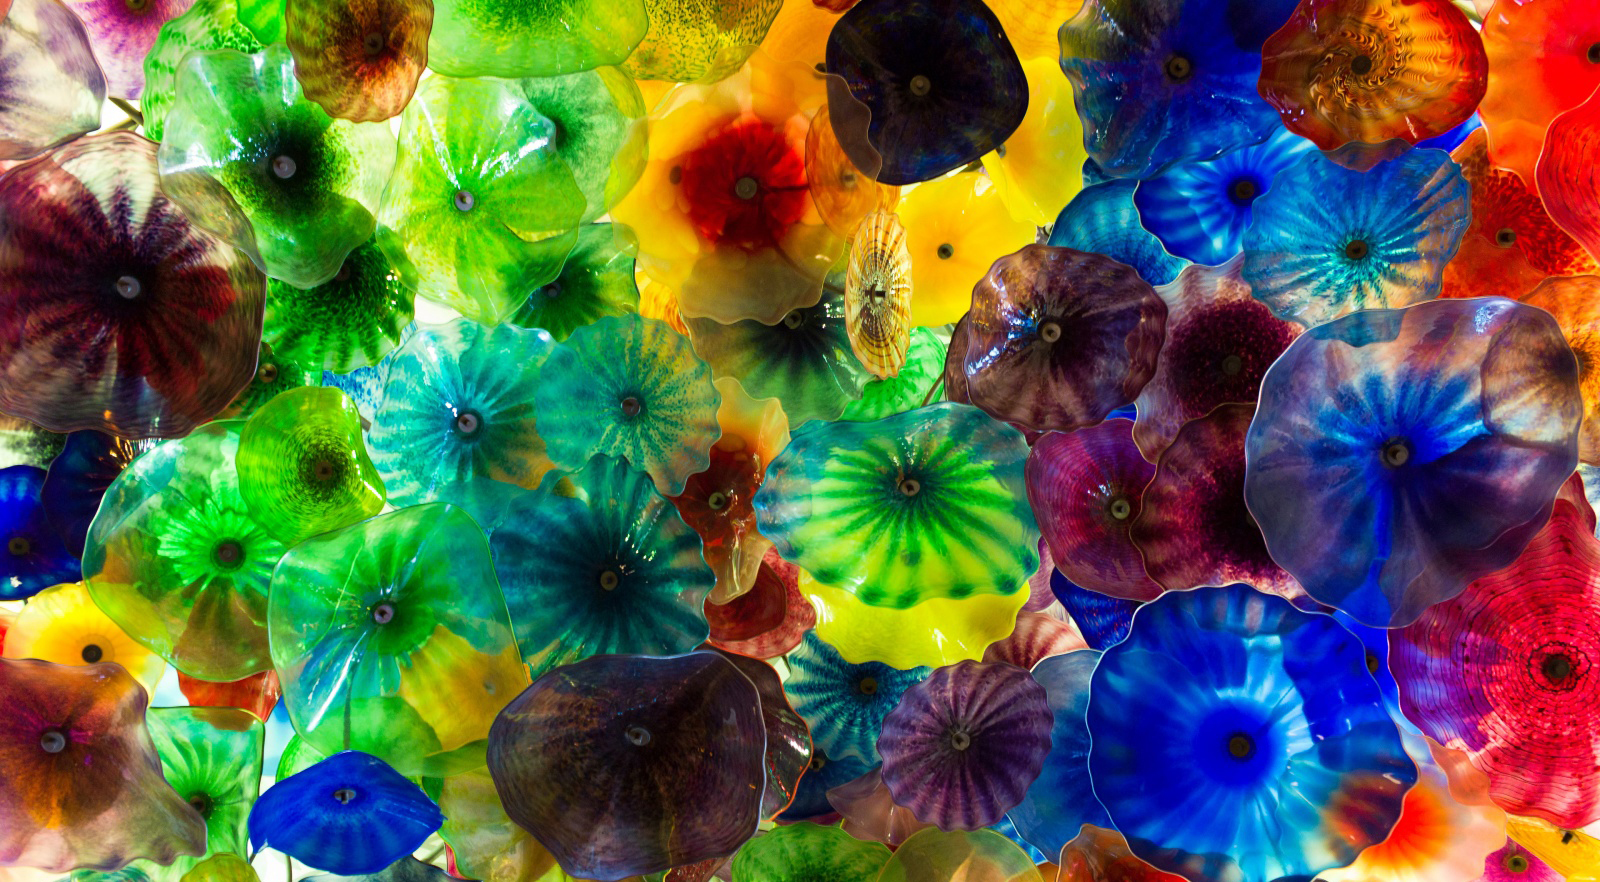 chihuly glass art wallpaper all in wallpapers islamic. Black Bedroom Furniture Sets. Home Design Ideas